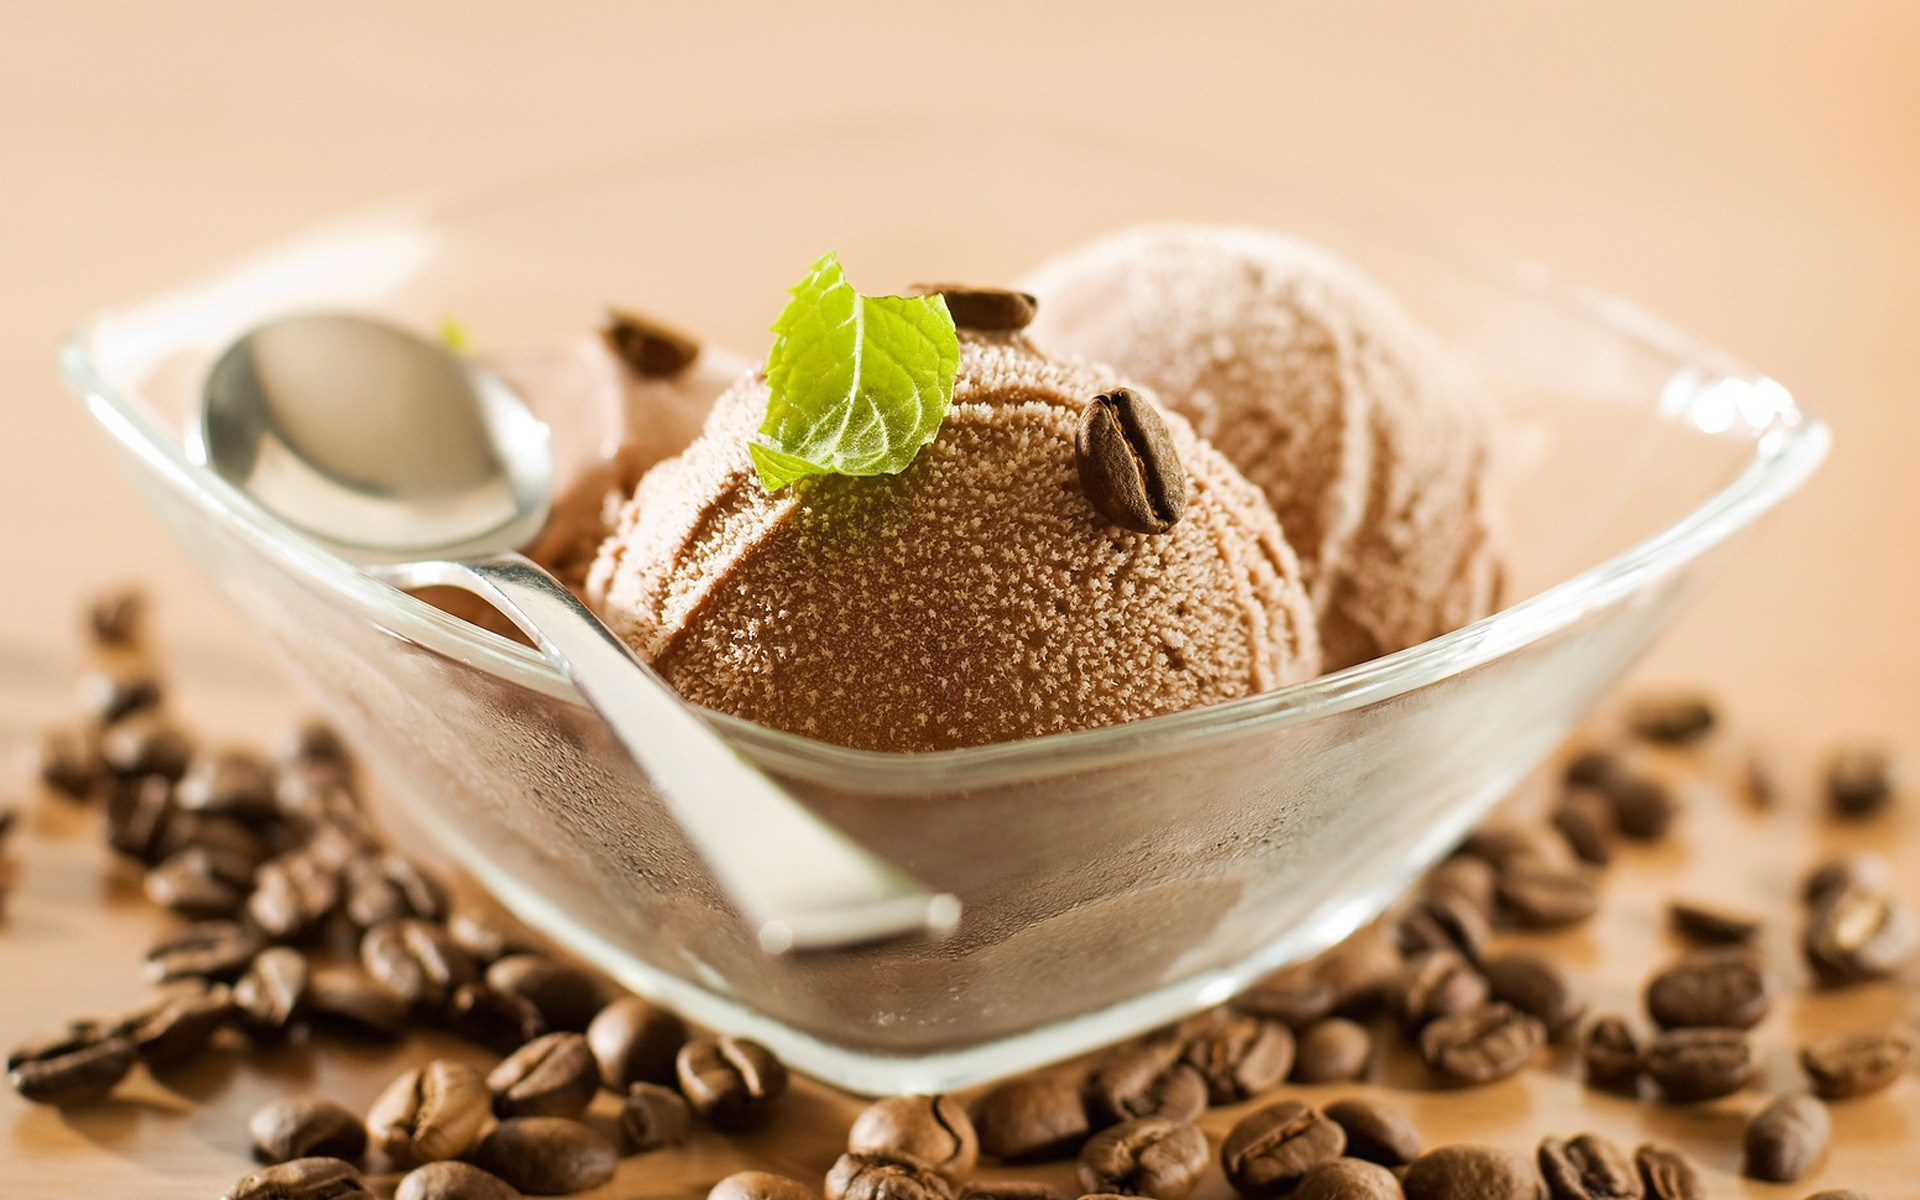 Ice cream with coffee beans